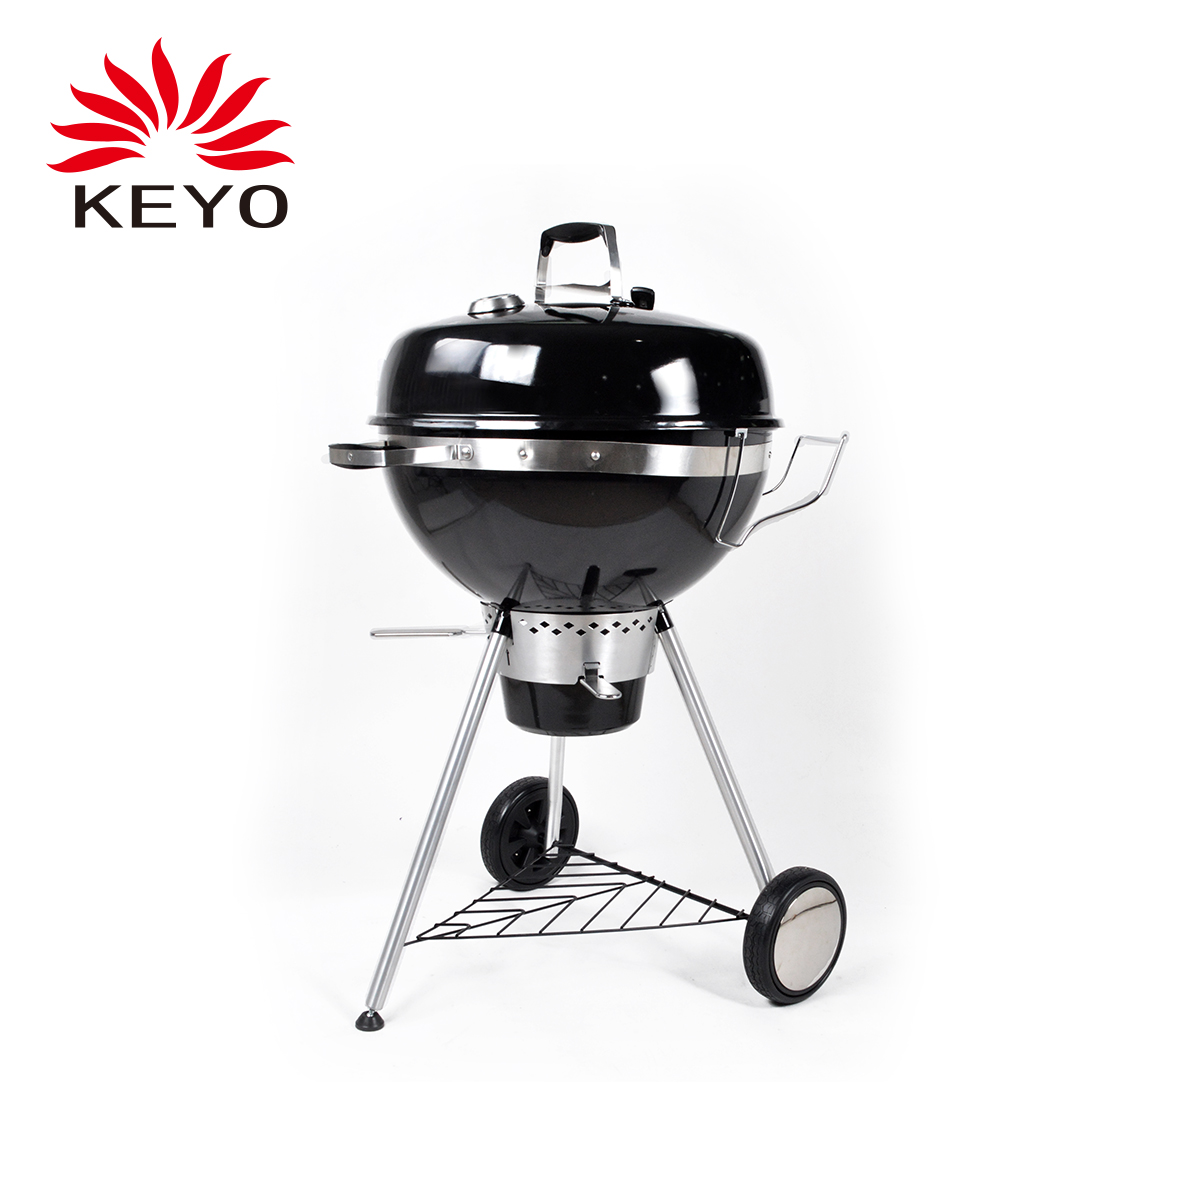 KY22022ROO Trolley BBQ Grill